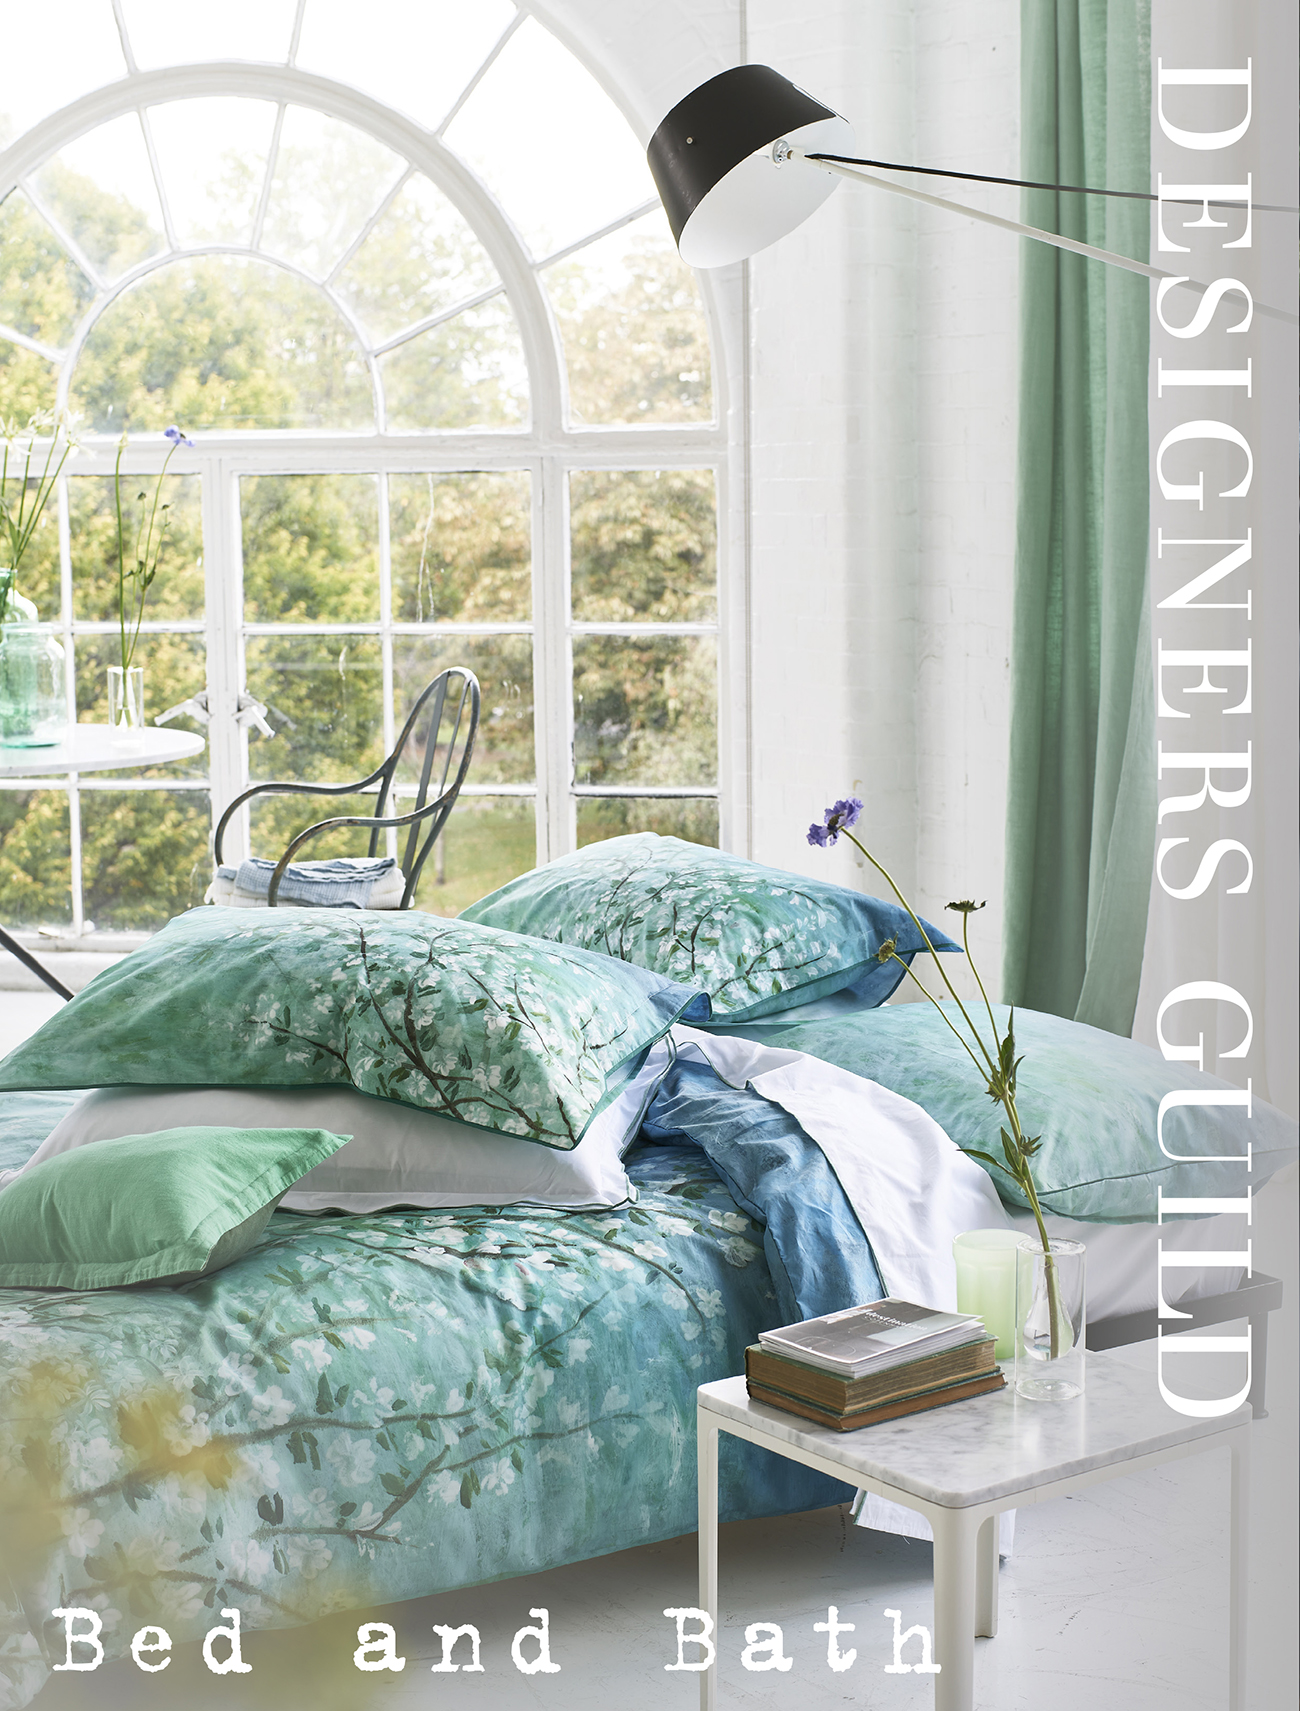 DESIGNERS GUILD BED AND BATH SPRING/SUMMER 2021